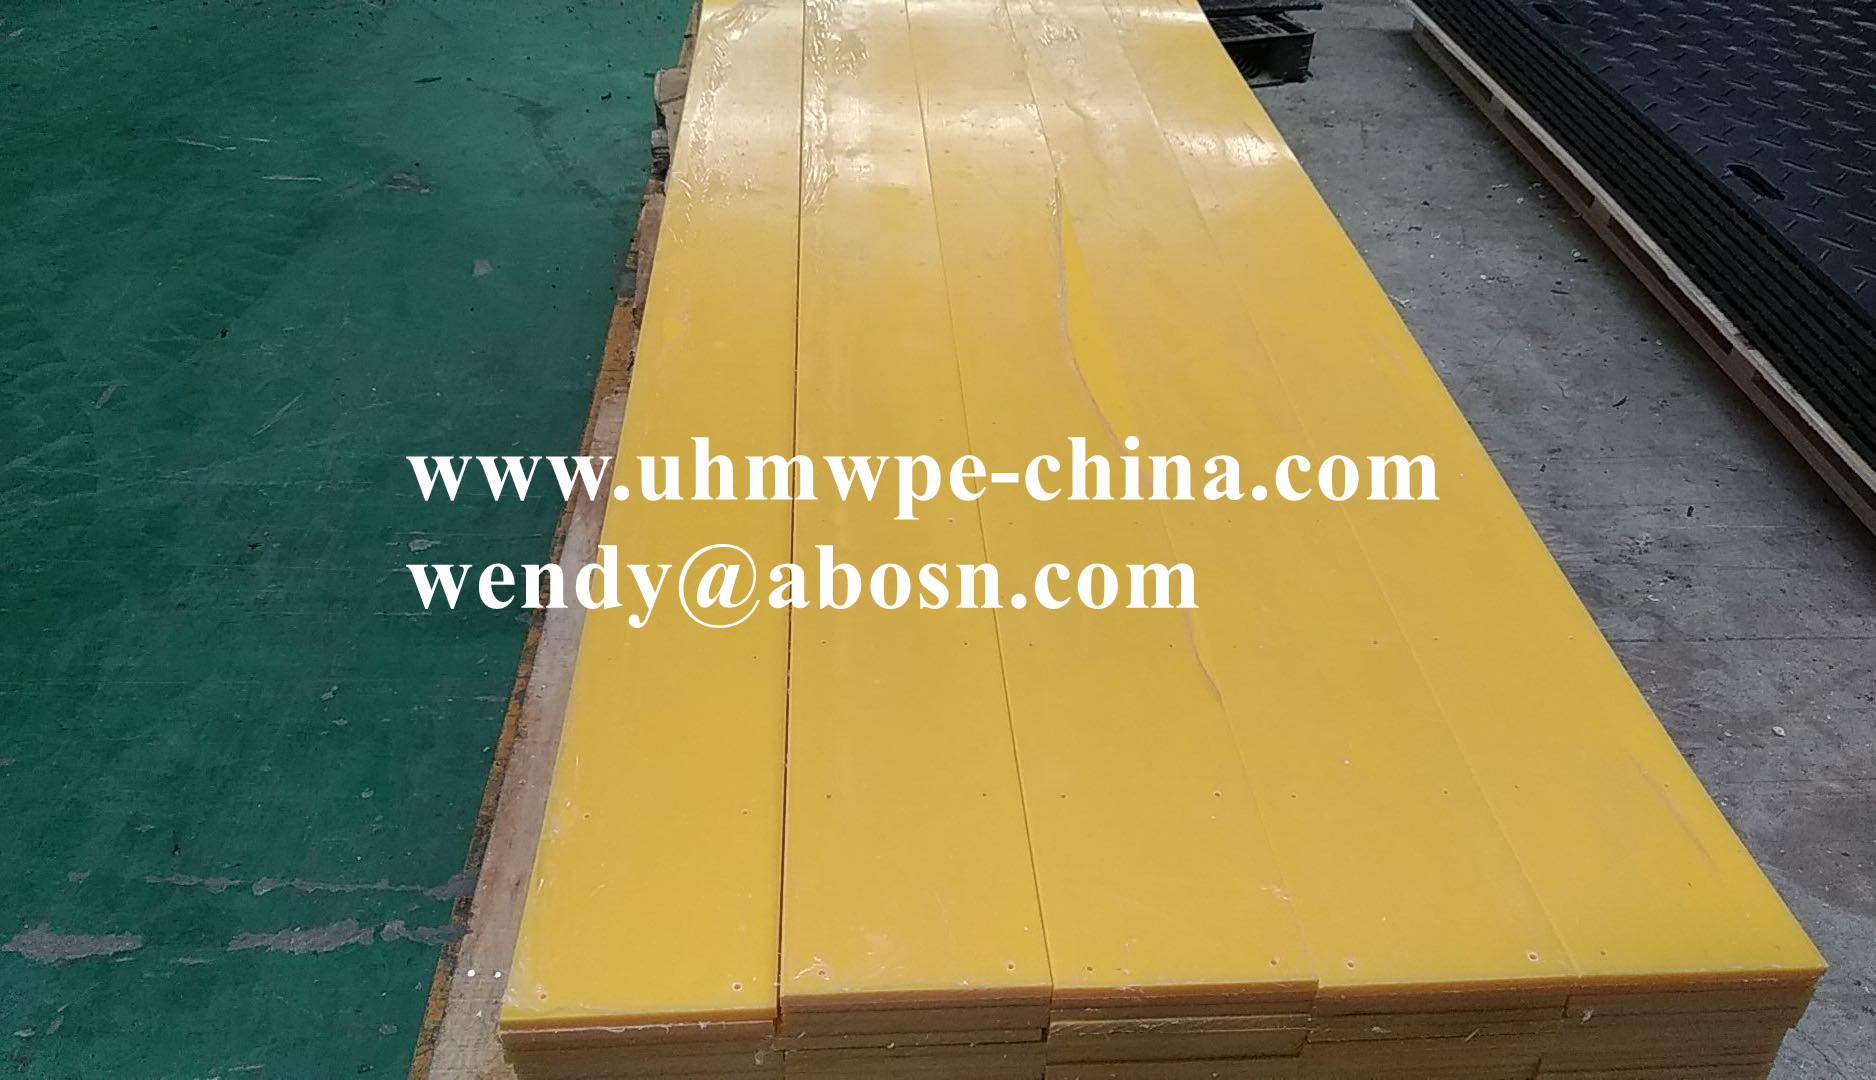 High Density Polyethylene HDPE Puck Board Sheet